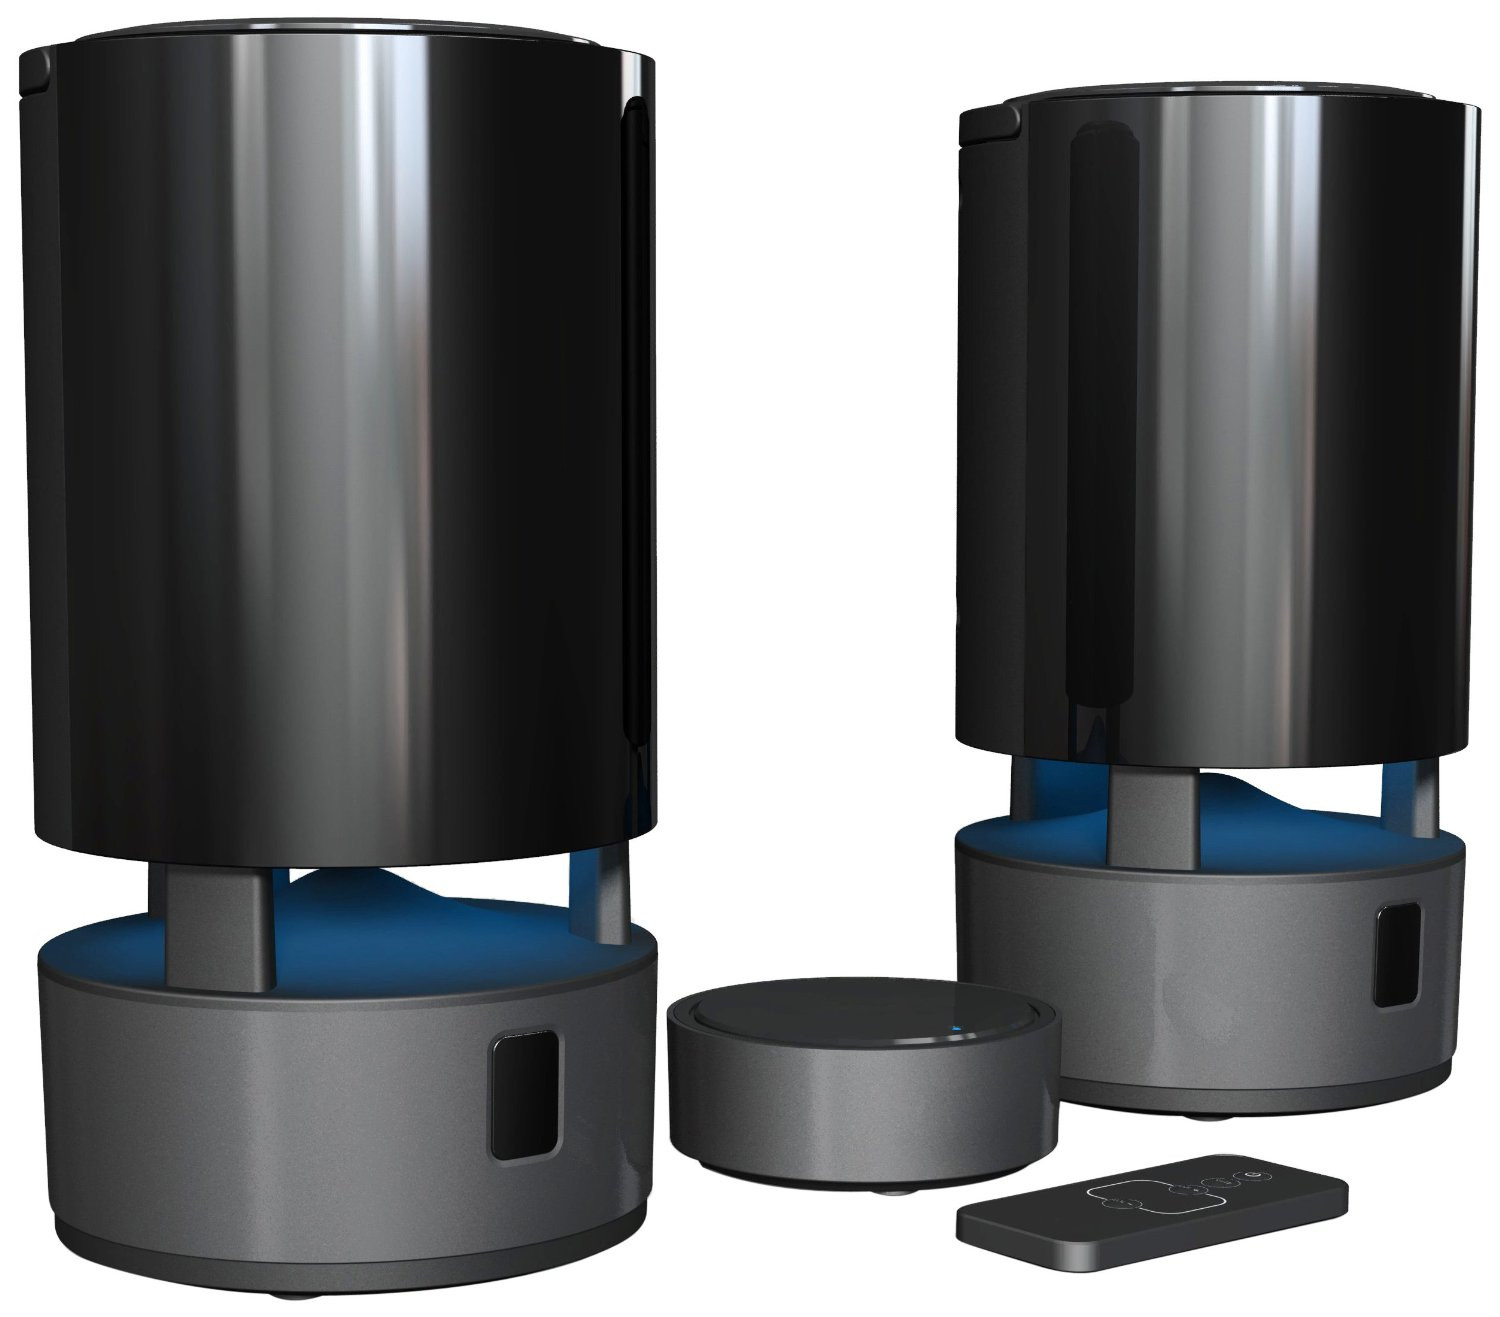 Best ideas about Best Outdoor Wireless Speakers . Save or Pin Top 10 Best Selling Bookshelf Speakers Now.